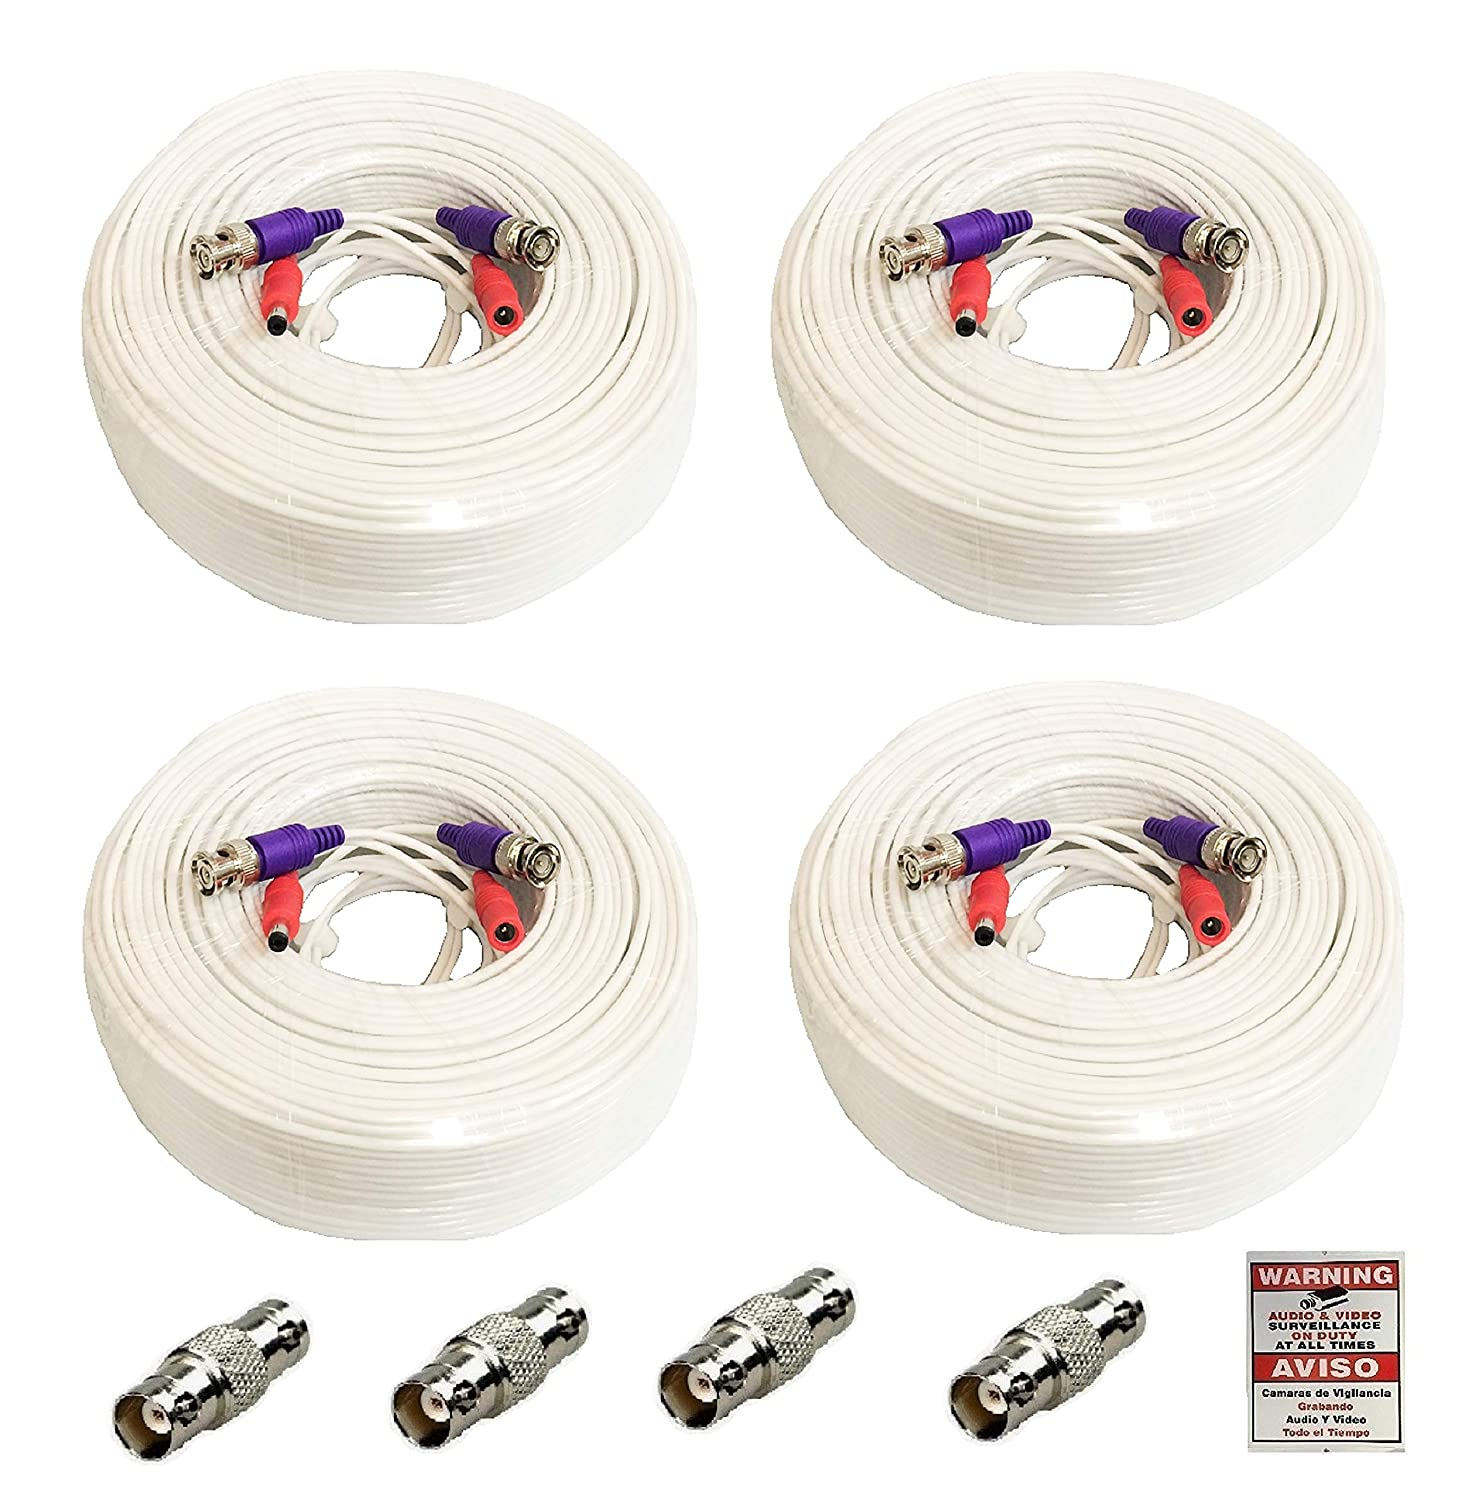 WennoW 4 Pack 165 Feet All-in-One Siamese 4K 8MP BNC Video & Power Extension Cable for All HD CCTV Security Cameras DVR System WT nejn276635049